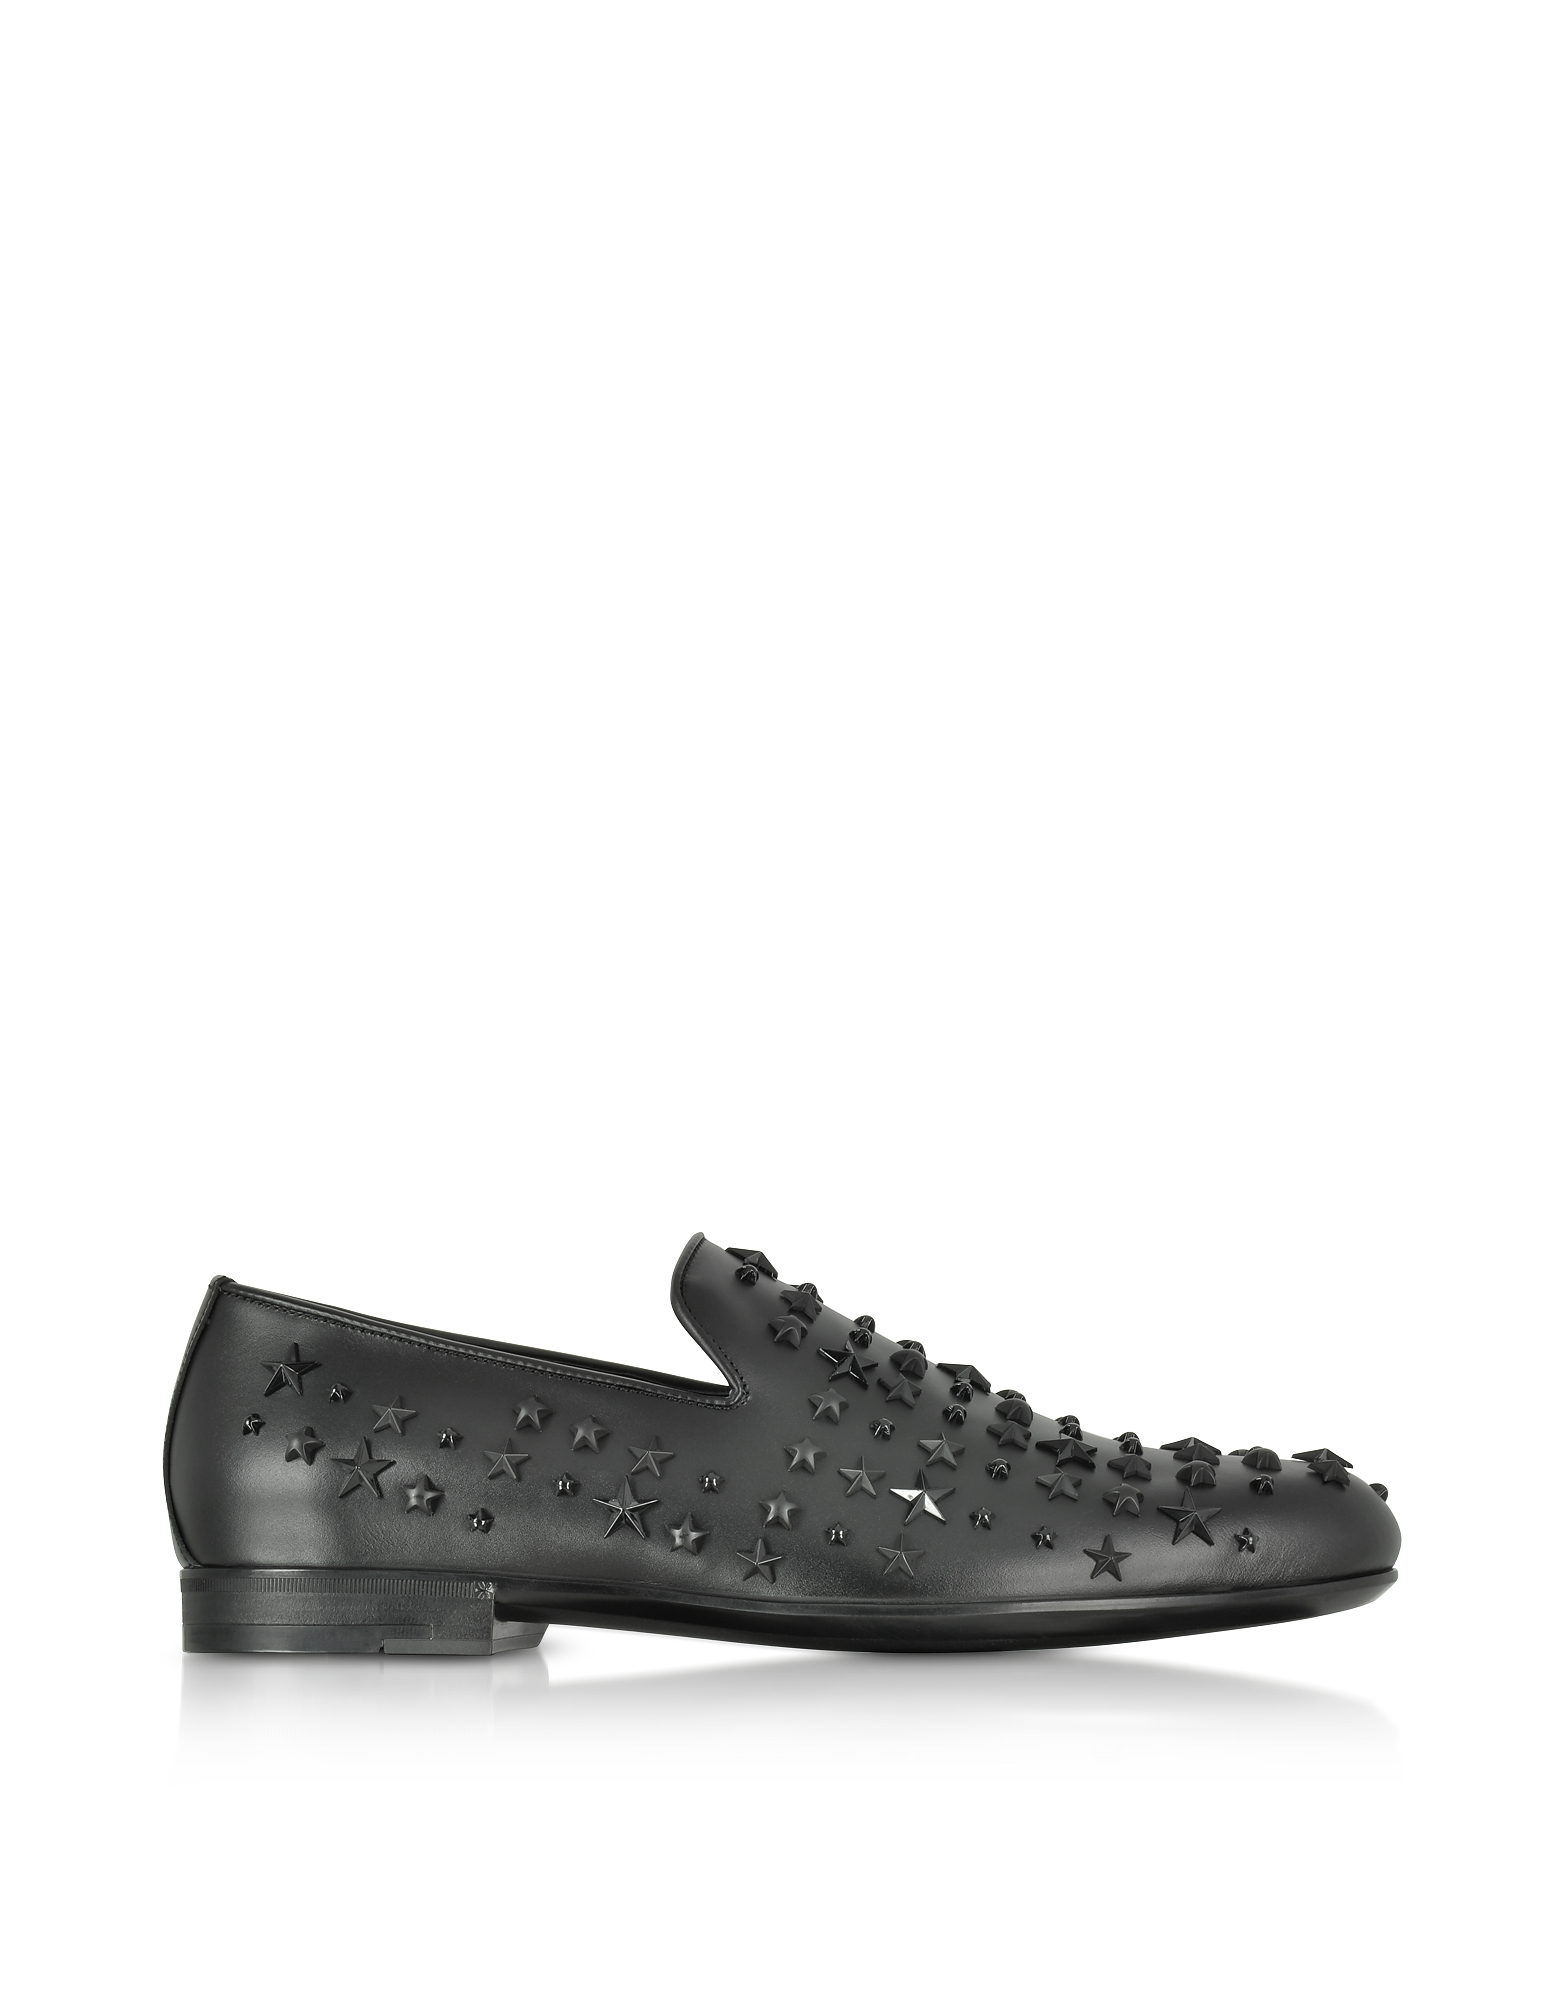 Jimmy Choo Shoes, Sloane OMX Black Leather Loafers w/ Studded Mixed Stars